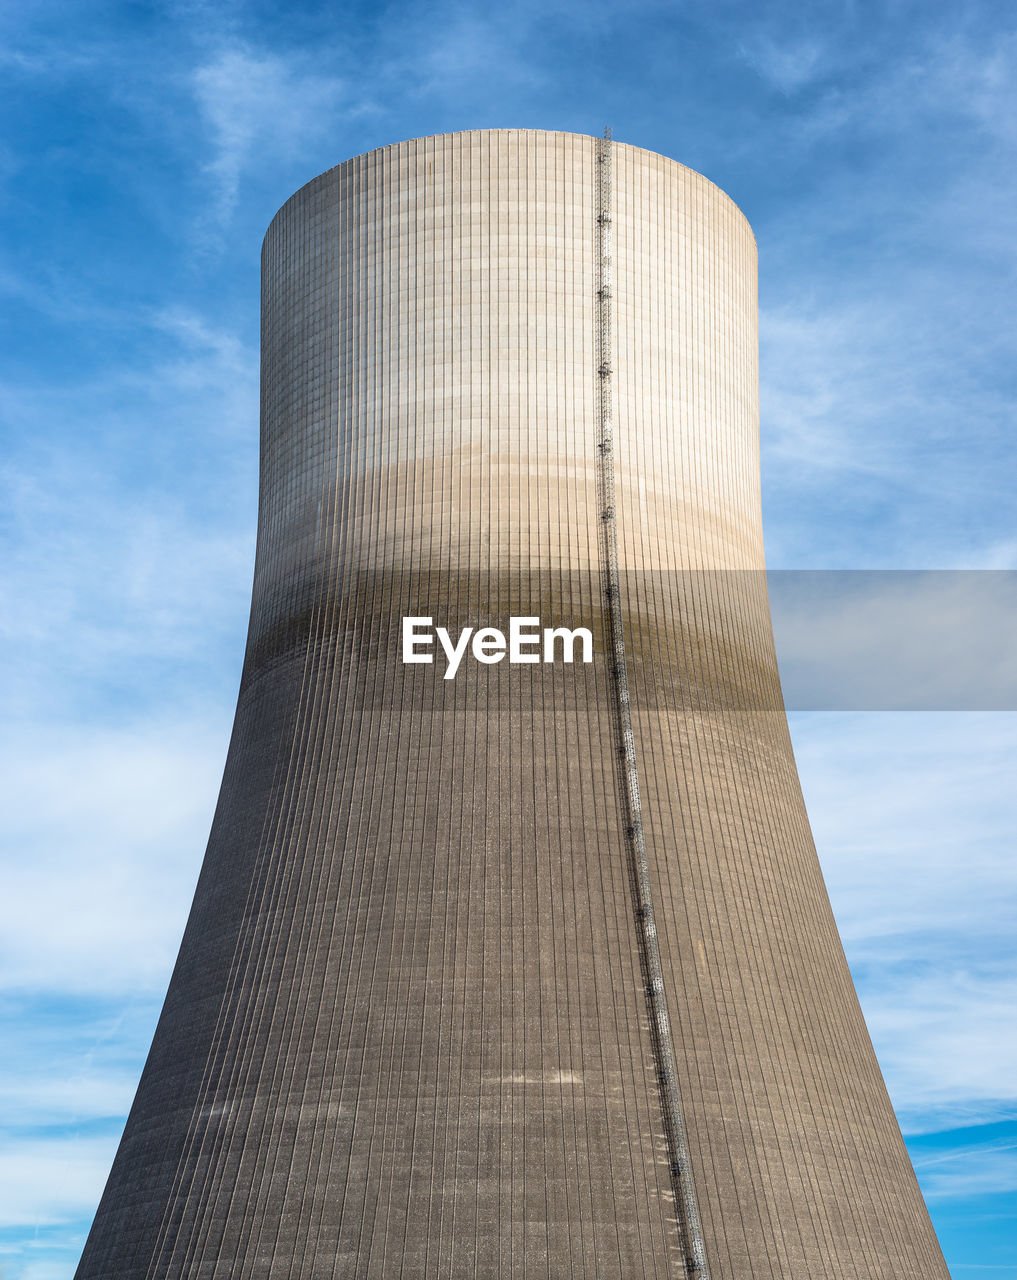 A huge chimney of a nuclear power plant close up on a background of blue sky with clouds